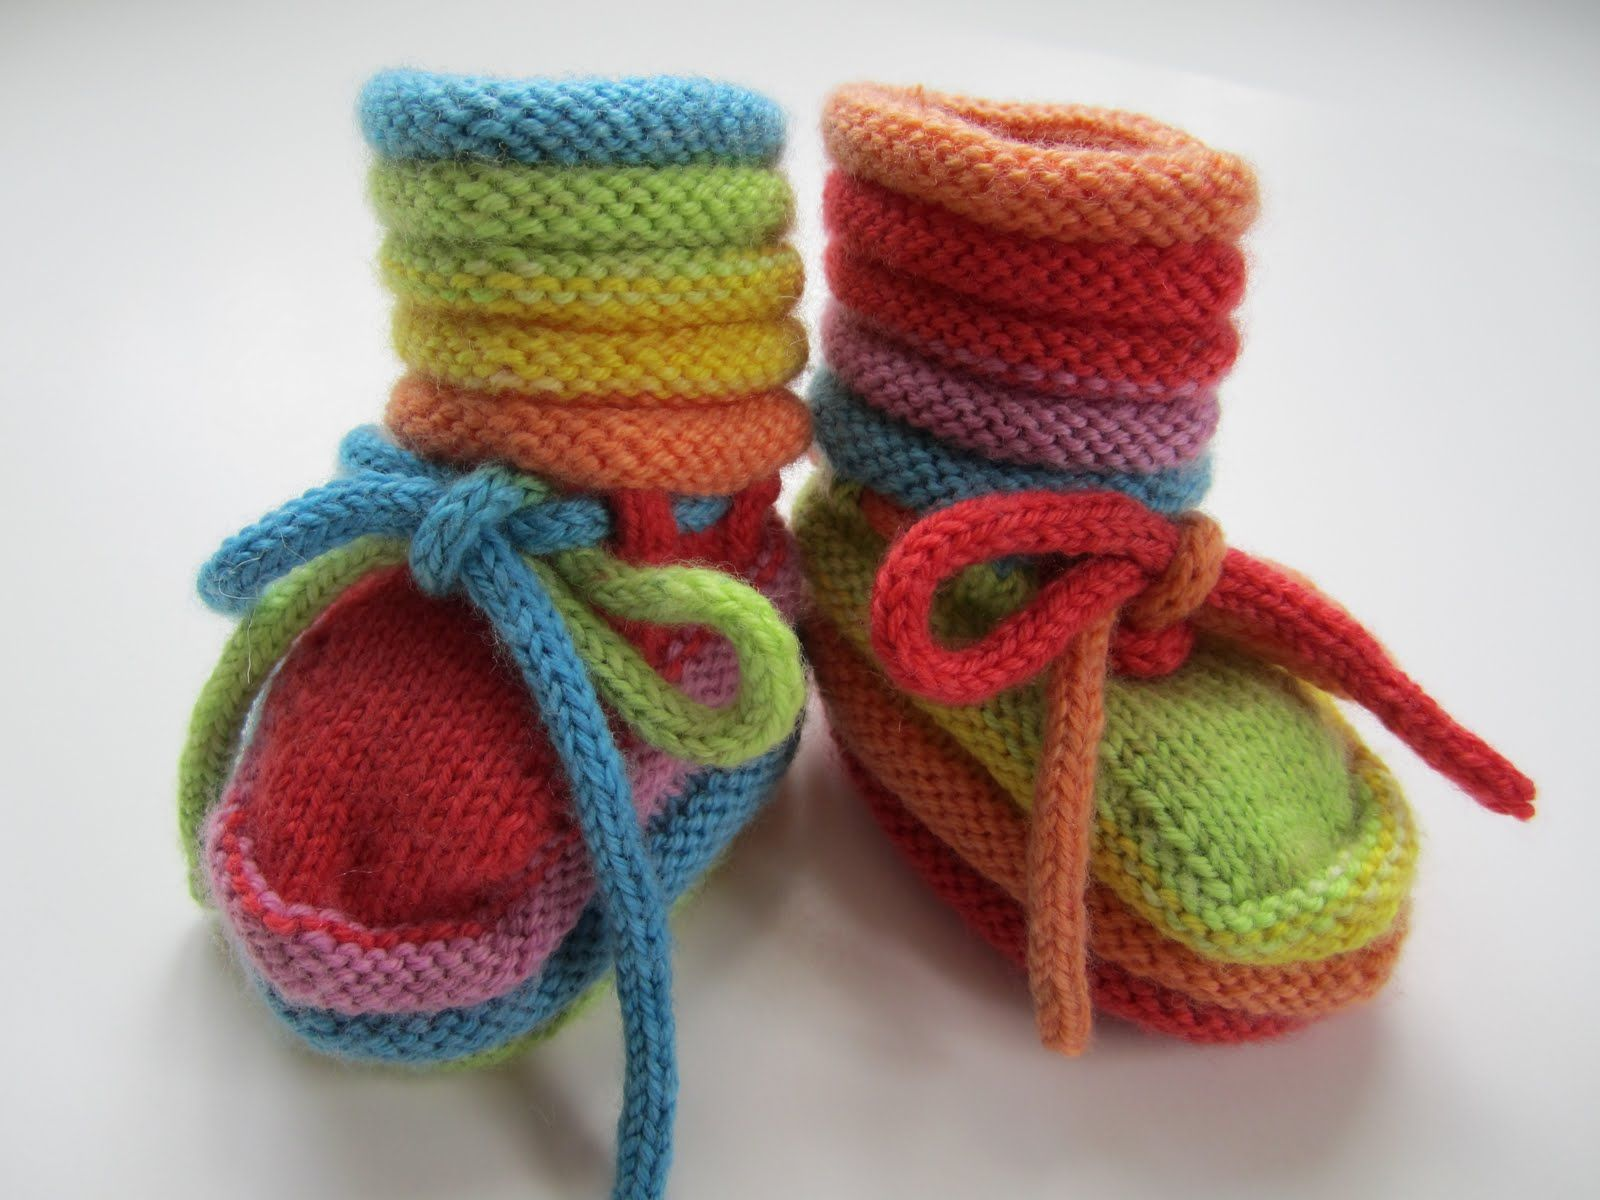 Knitted Baby Booties Free Patterns Cutest Ideas Ever | Baby booties ...